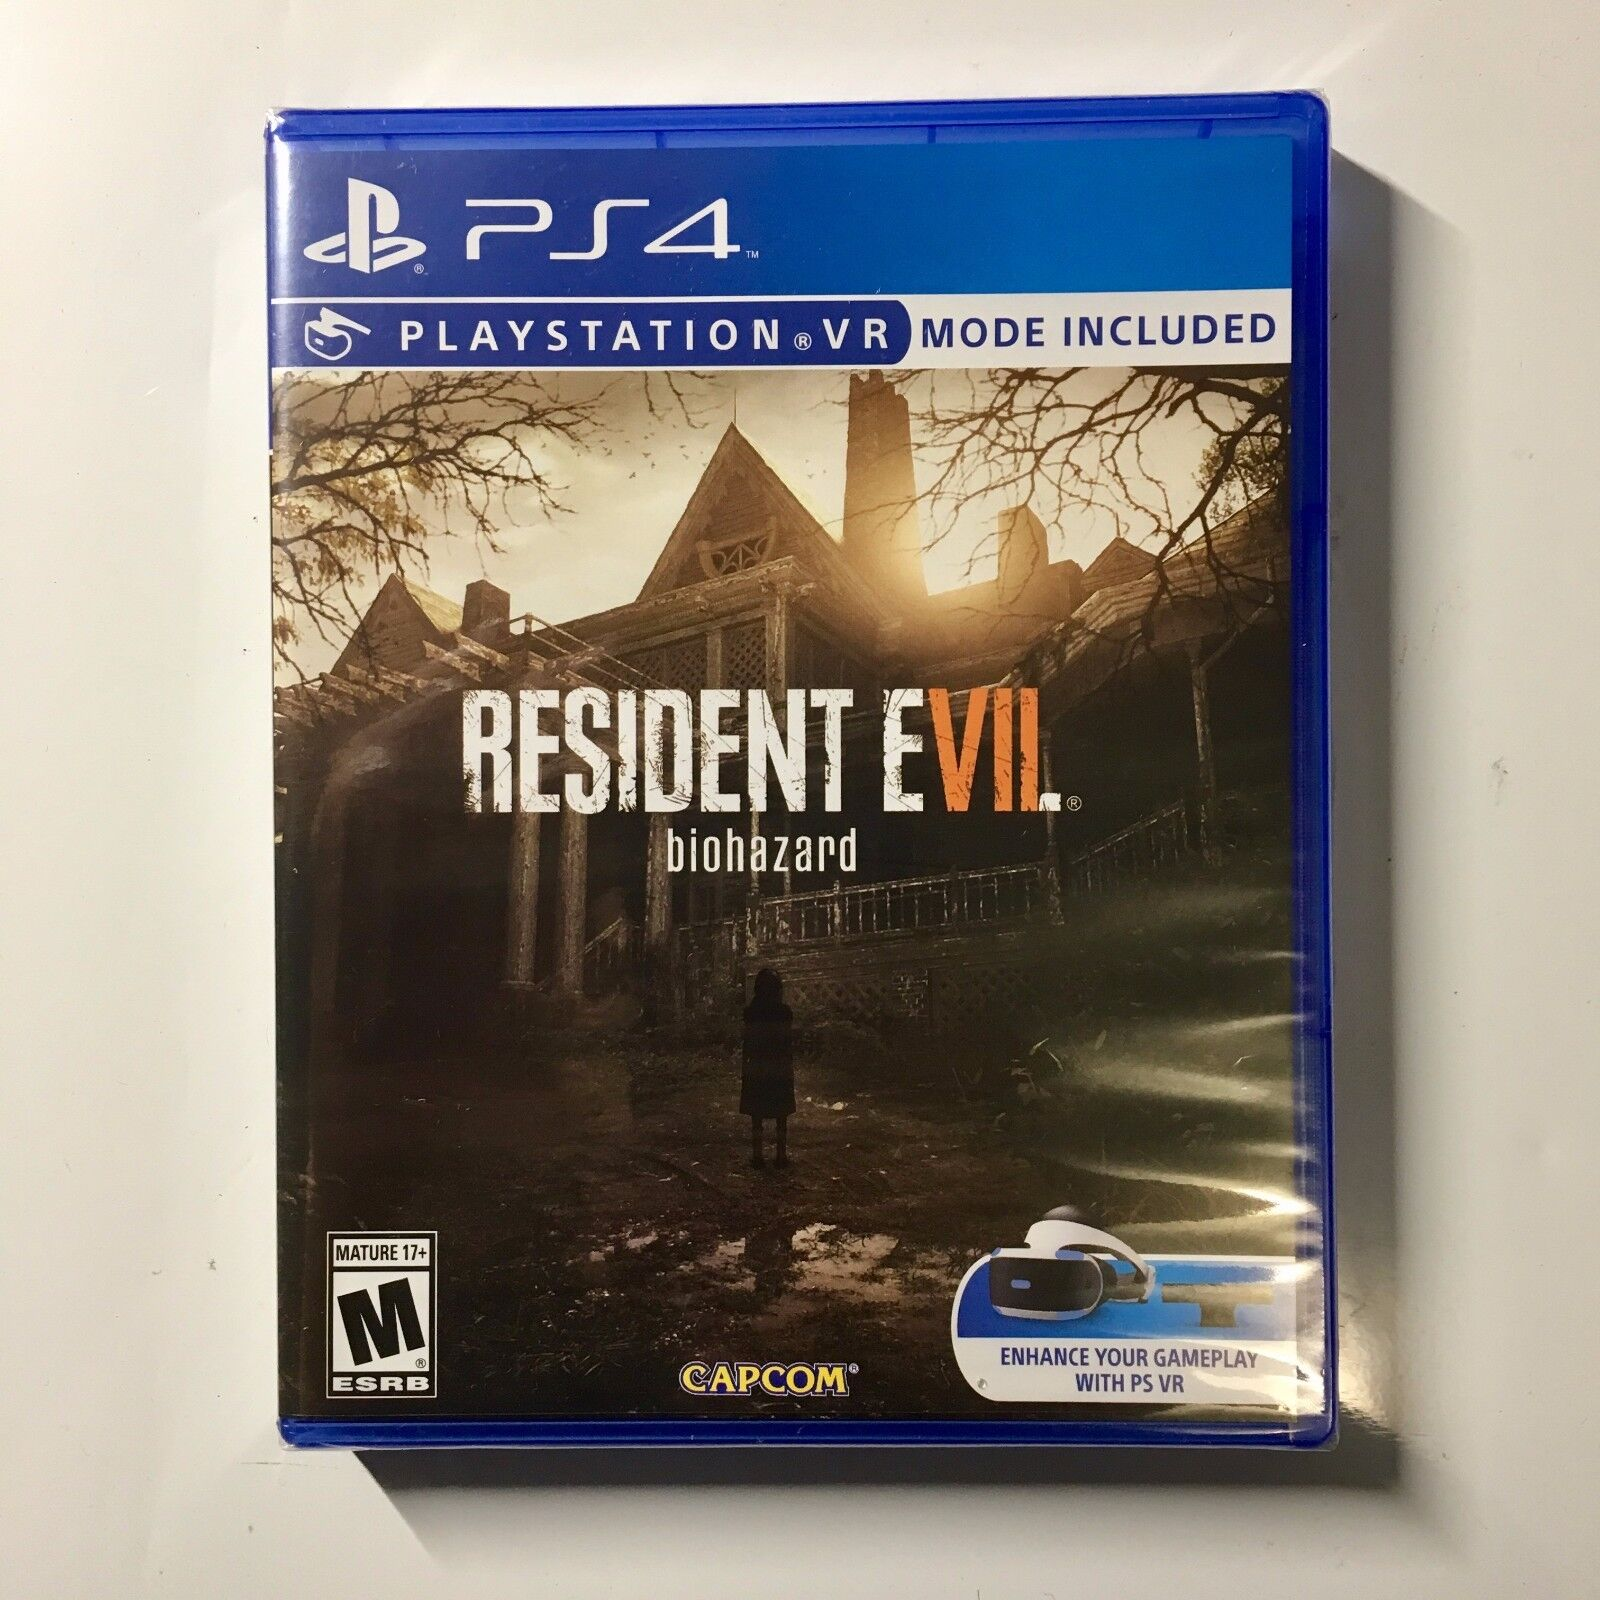 $36.99 - Resident Evil 7 VII Biohazard (PlayStation 4)  ✔Brand New & Free Shipping✔